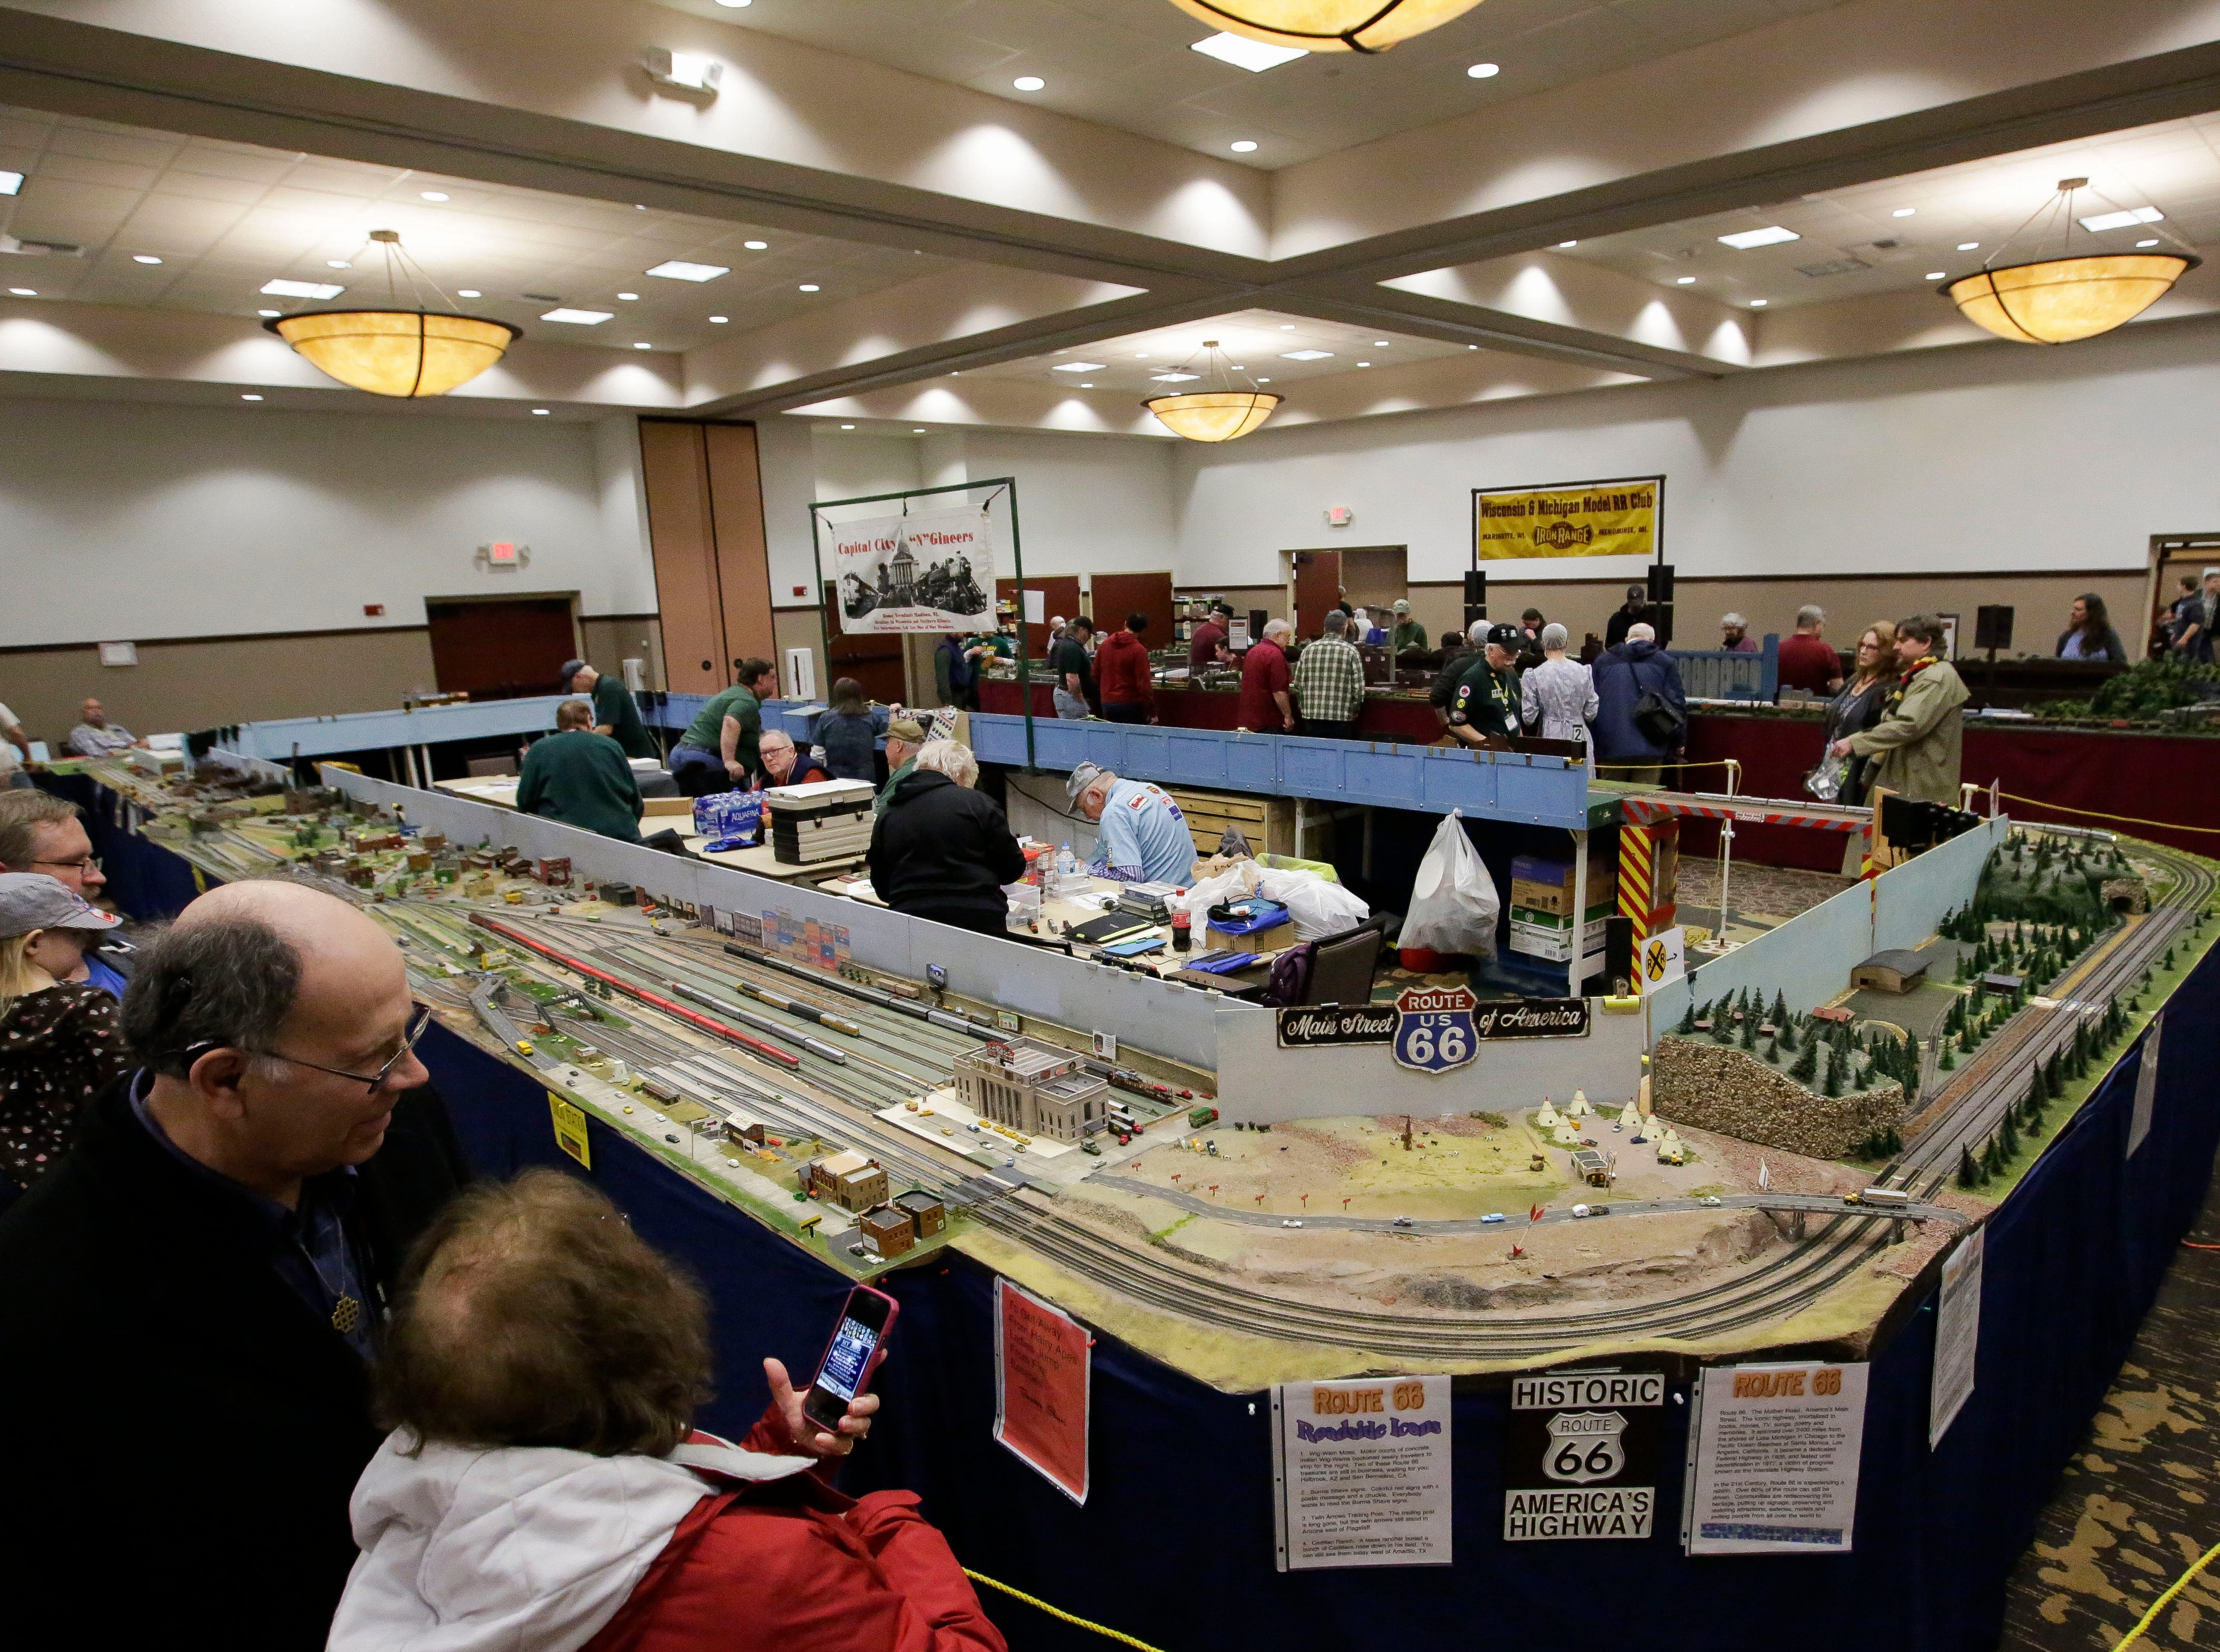 Spectators mill around various model train displays on Sunday, February 3, 2019, during the Arctic Run Model Railroad Show at the Holiday Inn Convention Center in Stevens Point, Wis.Tork Mason/USA TODAY NETWORK-Wisconsin